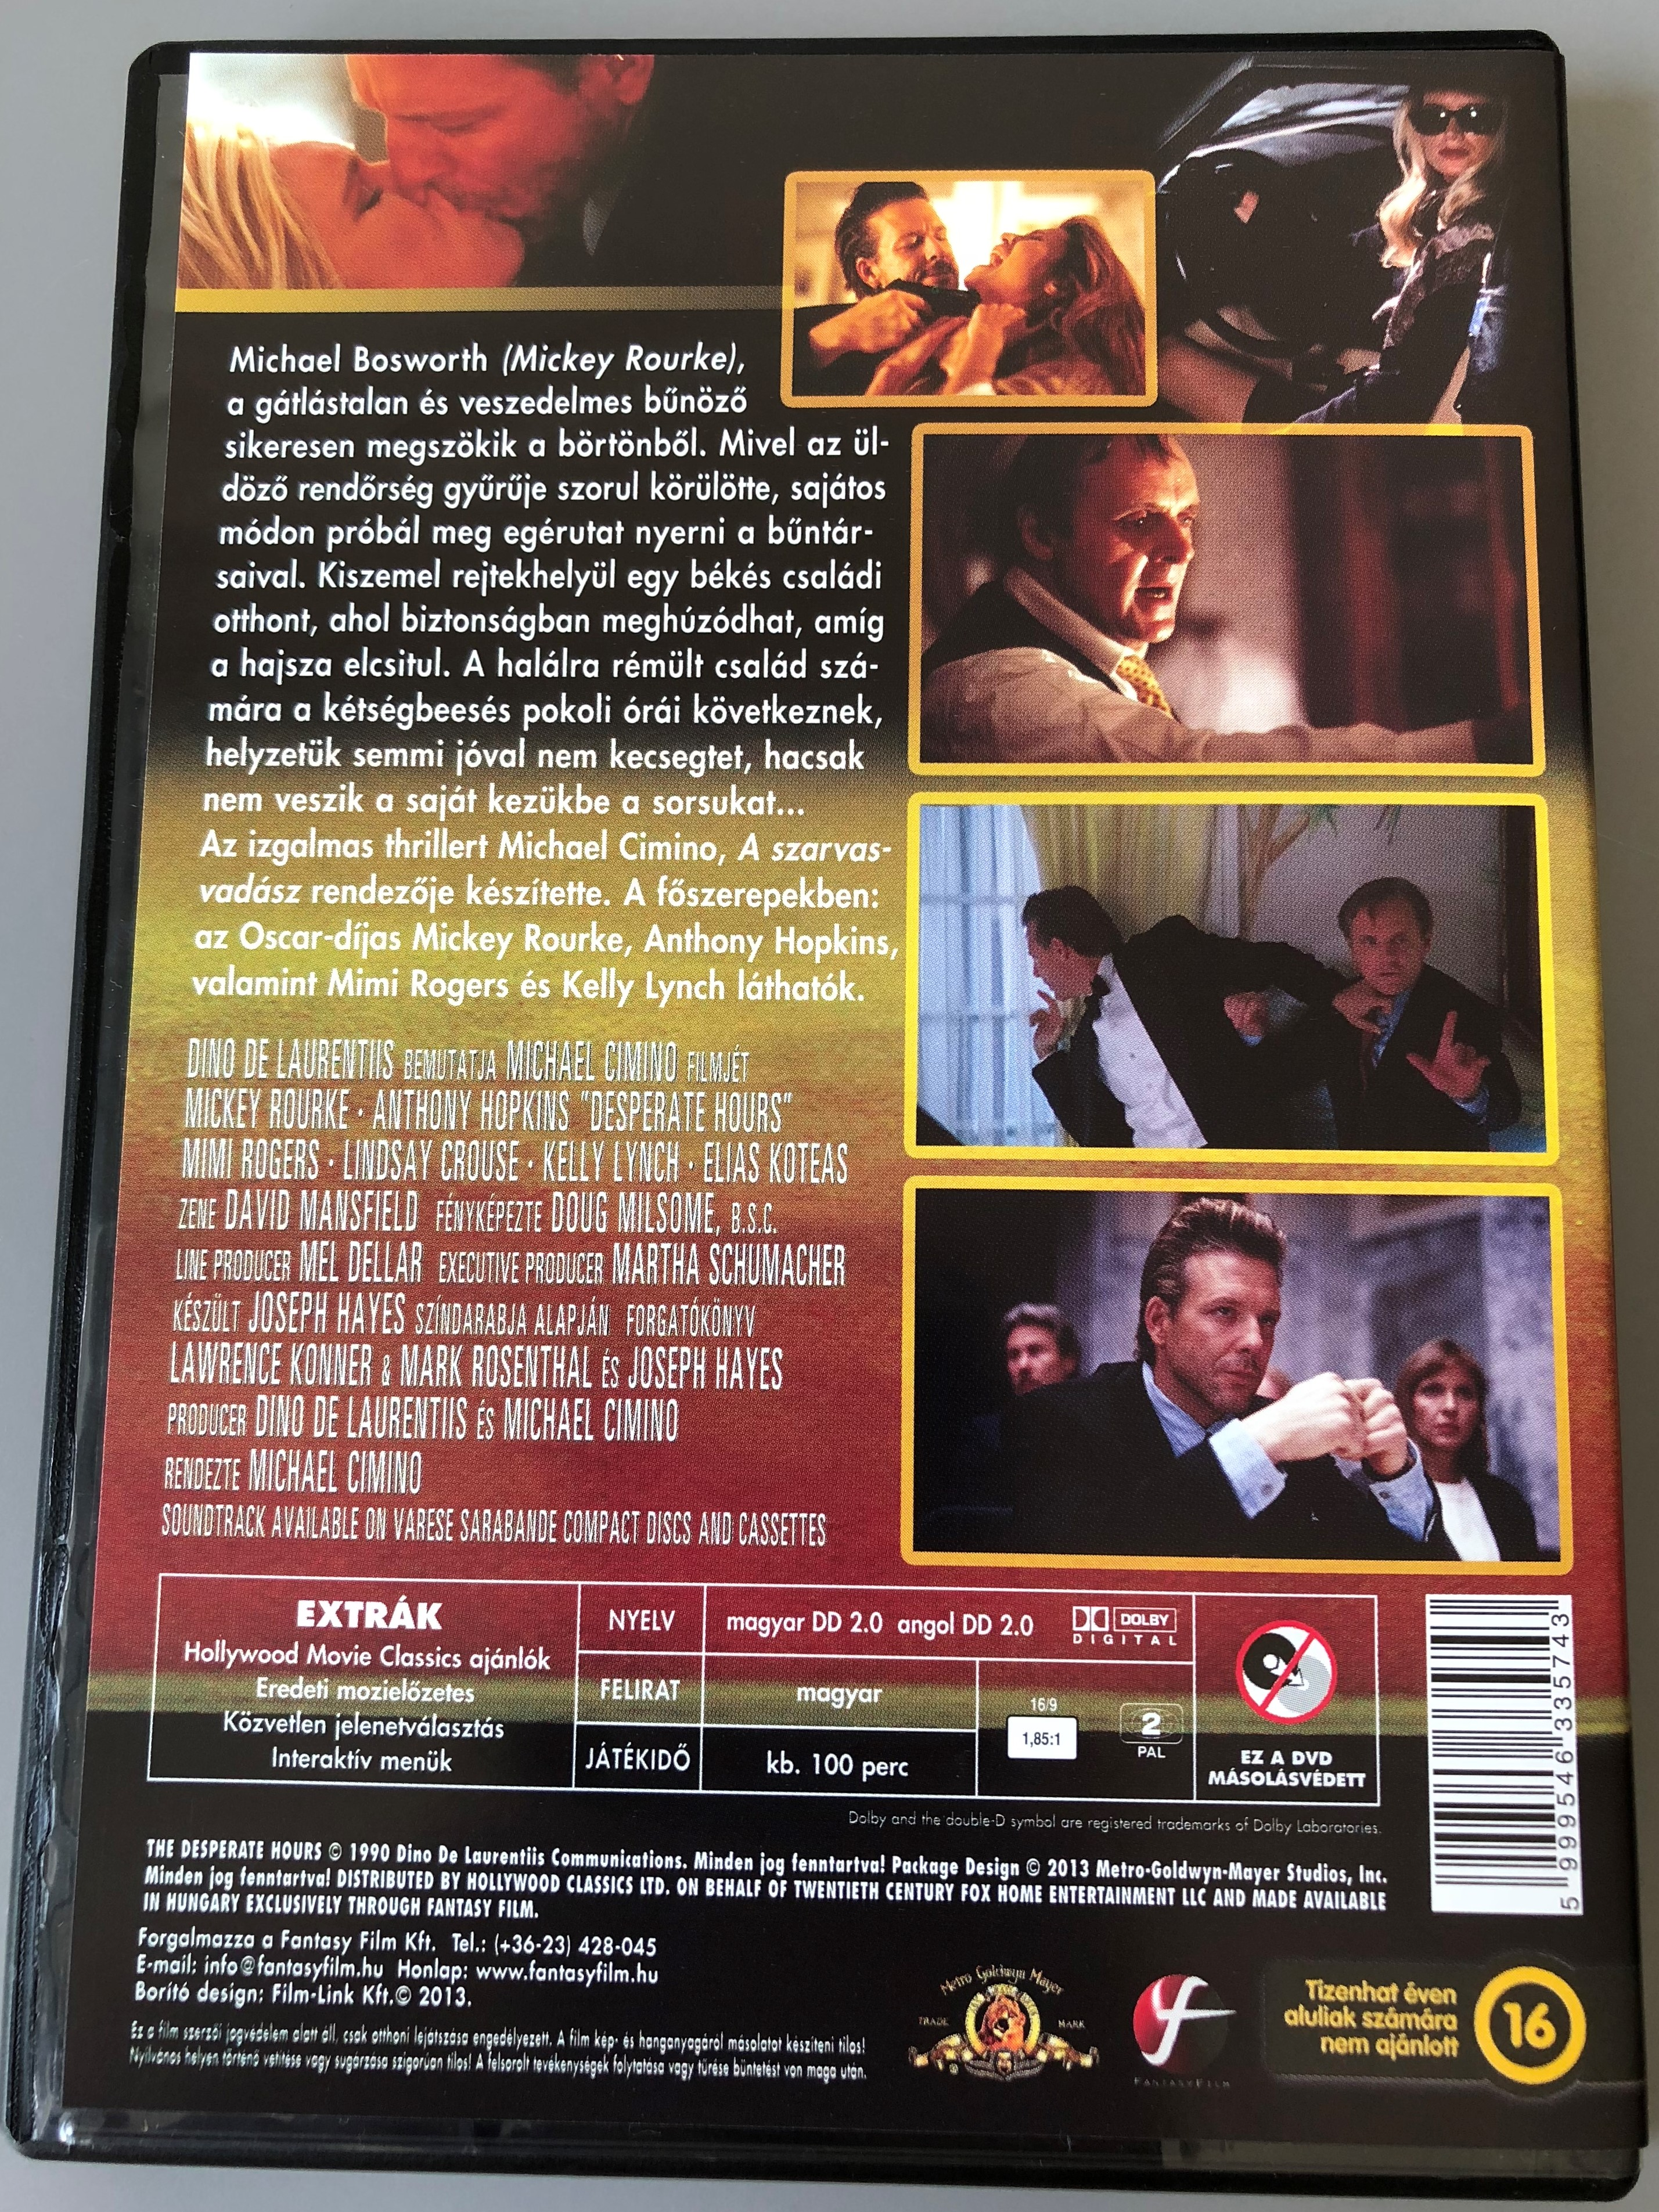 desperate-hours-dvd-1990-a-f-lelem-r-i-directed-by-michael-cimino-starring-mickey-rourke-anthony-hopkins-mimi-rogers-lindsay-crouse-kelly-lynch-2-.jpg